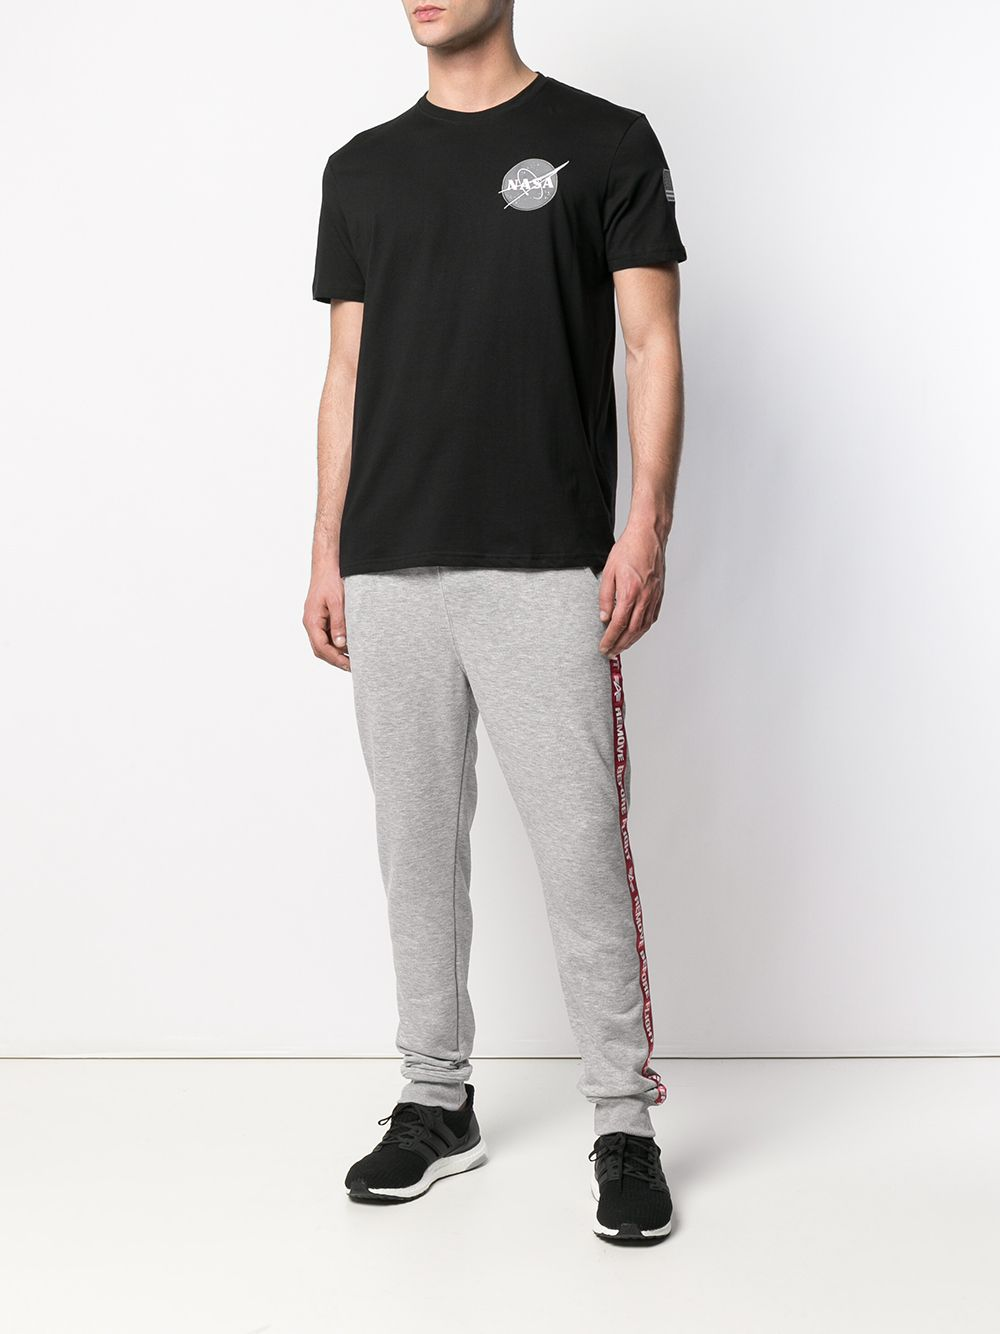 Alpha Industries t-shirt nasa uomo ALPHA INDUSTRIES | T-shirt | 17650703